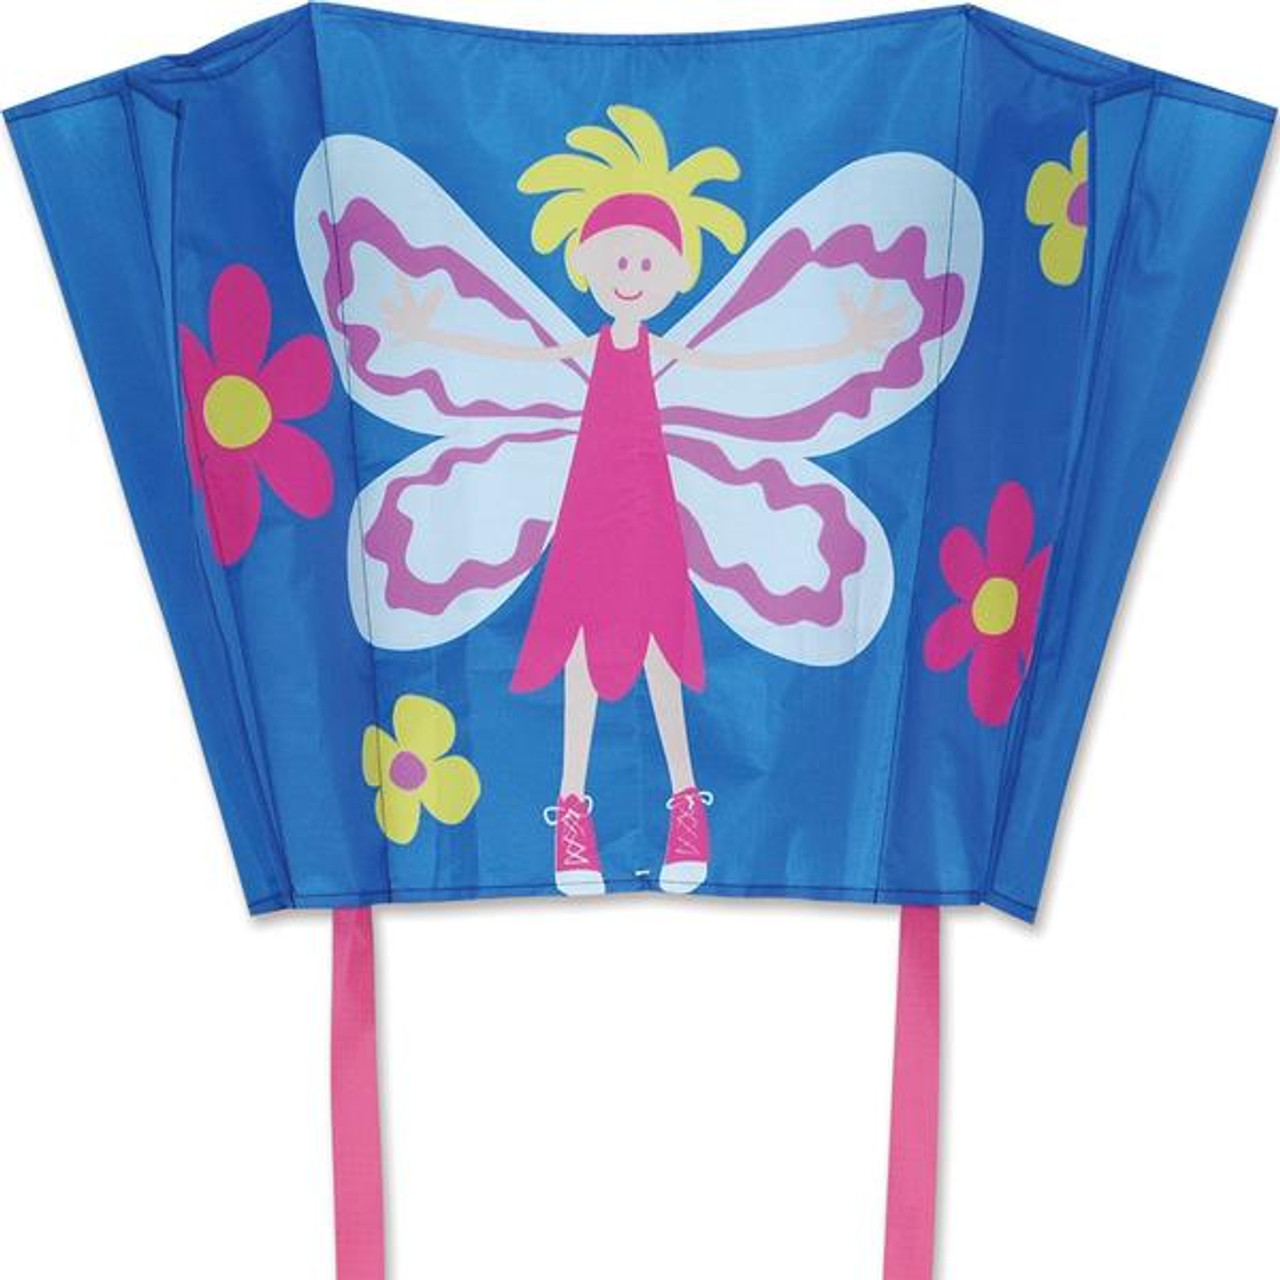 Fairy Big Back Pack Sled Kite